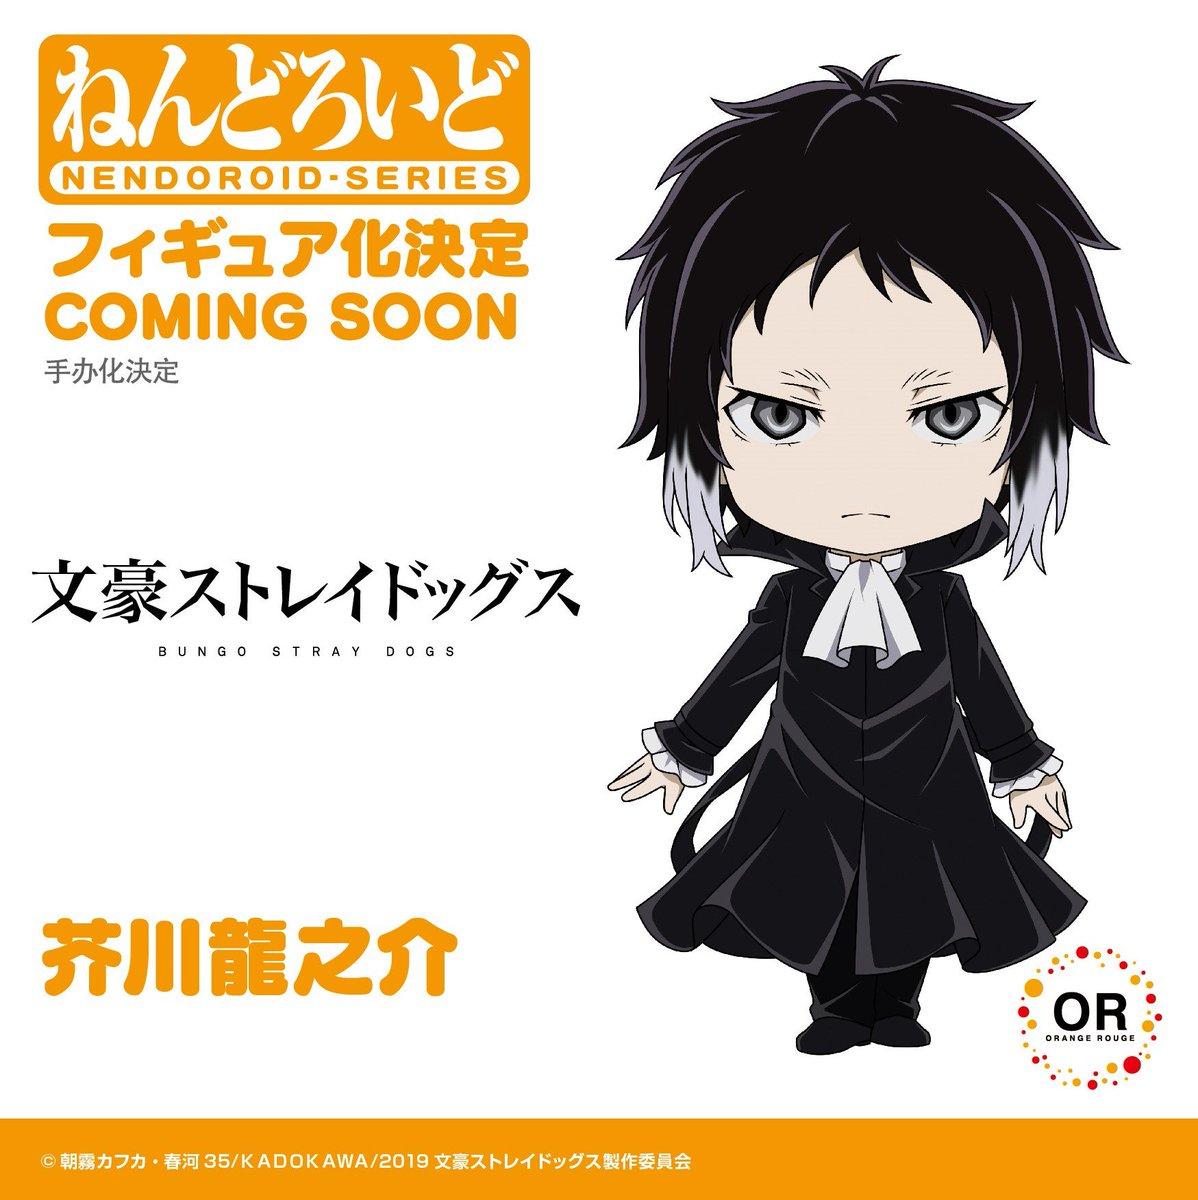 Enjoying the 3rd season of &quot;Bungo Stray Dogs&quot;? We&#39;ve got plenty of new figures coming soon!  Nendoroid Ryunosuke Akutagawa Nendoroid Doll:  Osamu Dazai Scale Figure: Osamu Dazai  Stay tuned for more information! Which character do you want to see next?  #bungostraydogs #nendoroid<br>http://pic.twitter.com/EcjUy7OFpo